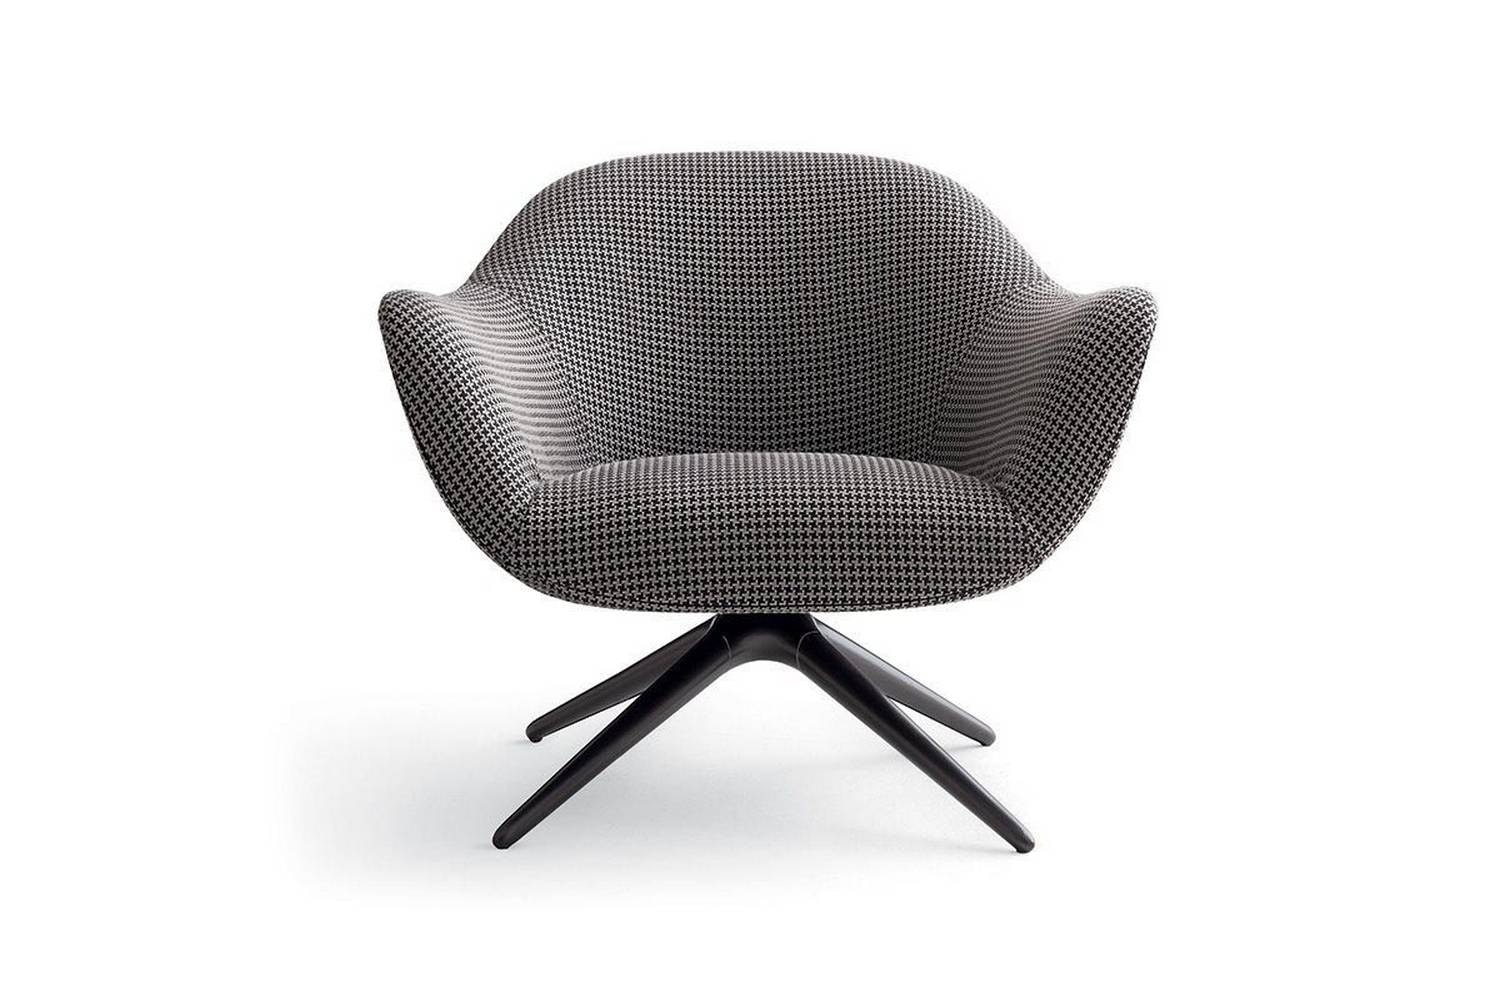 Mad Chair 2016 Armchair by Marcel Wanders for Poliform